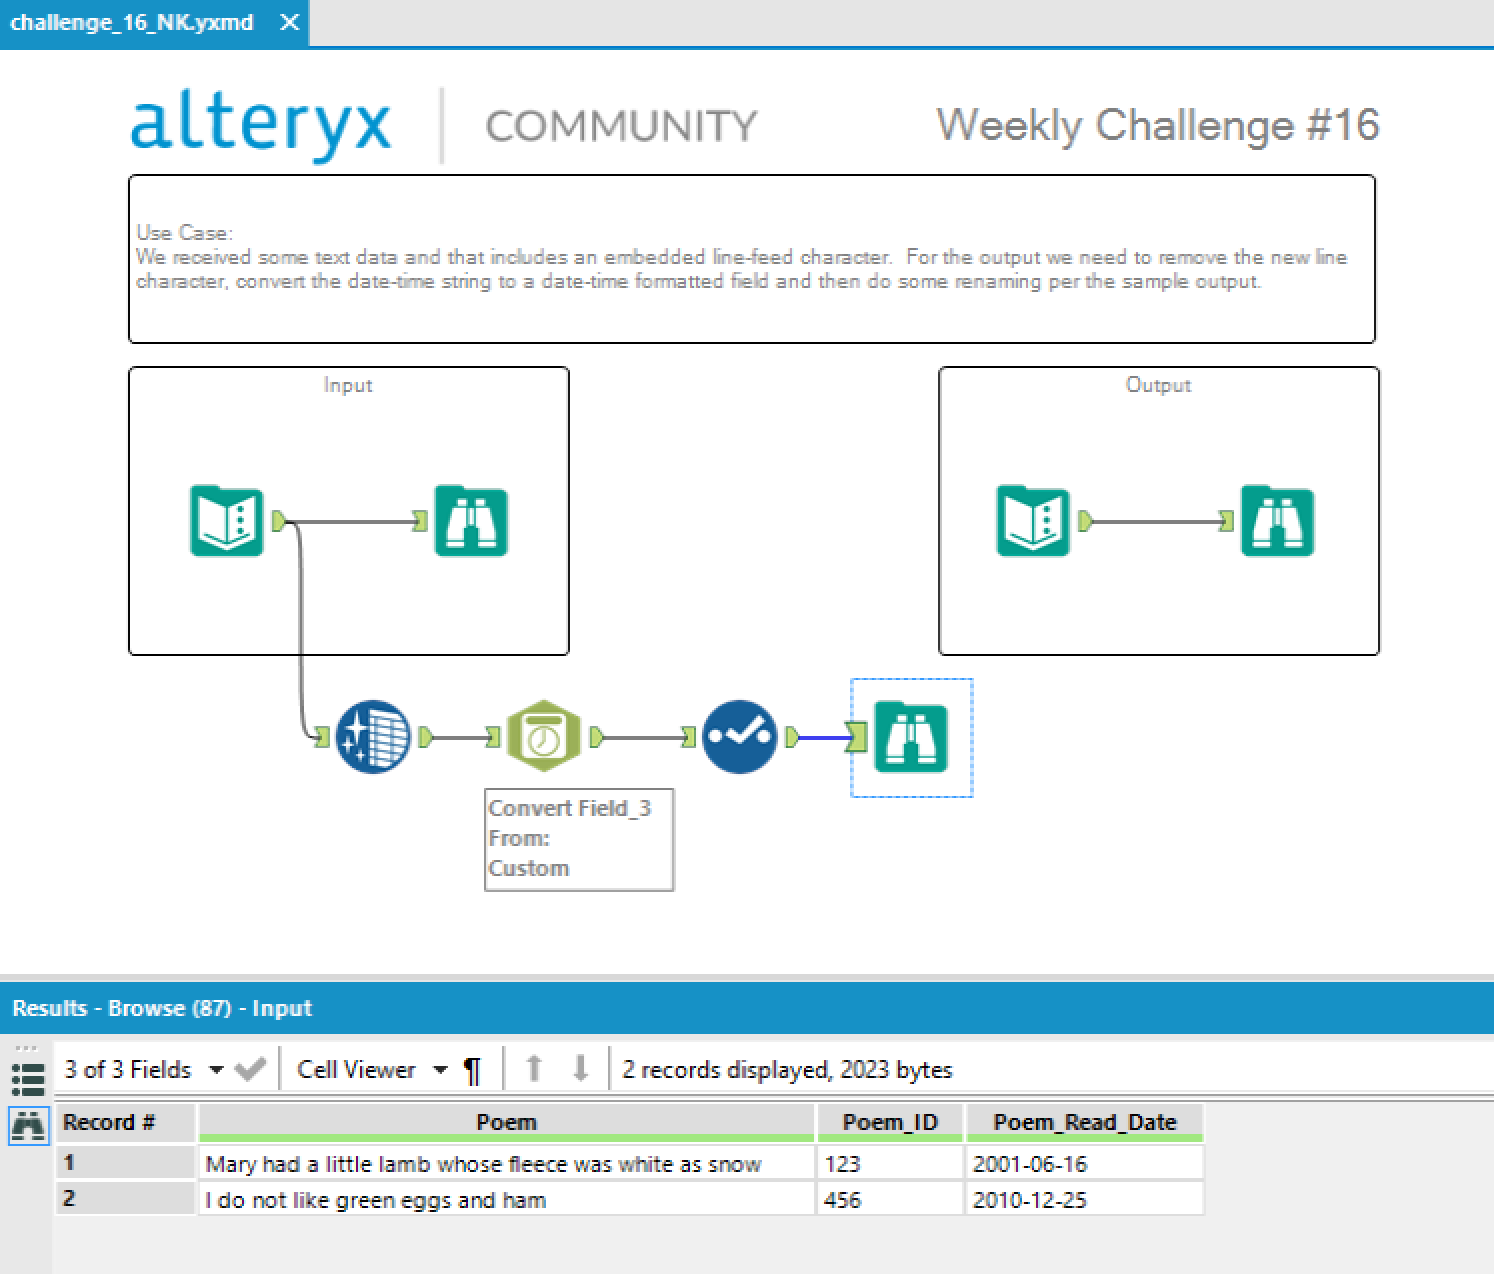 Challenge #16: Parsing Out the New-line Character - Alteryx